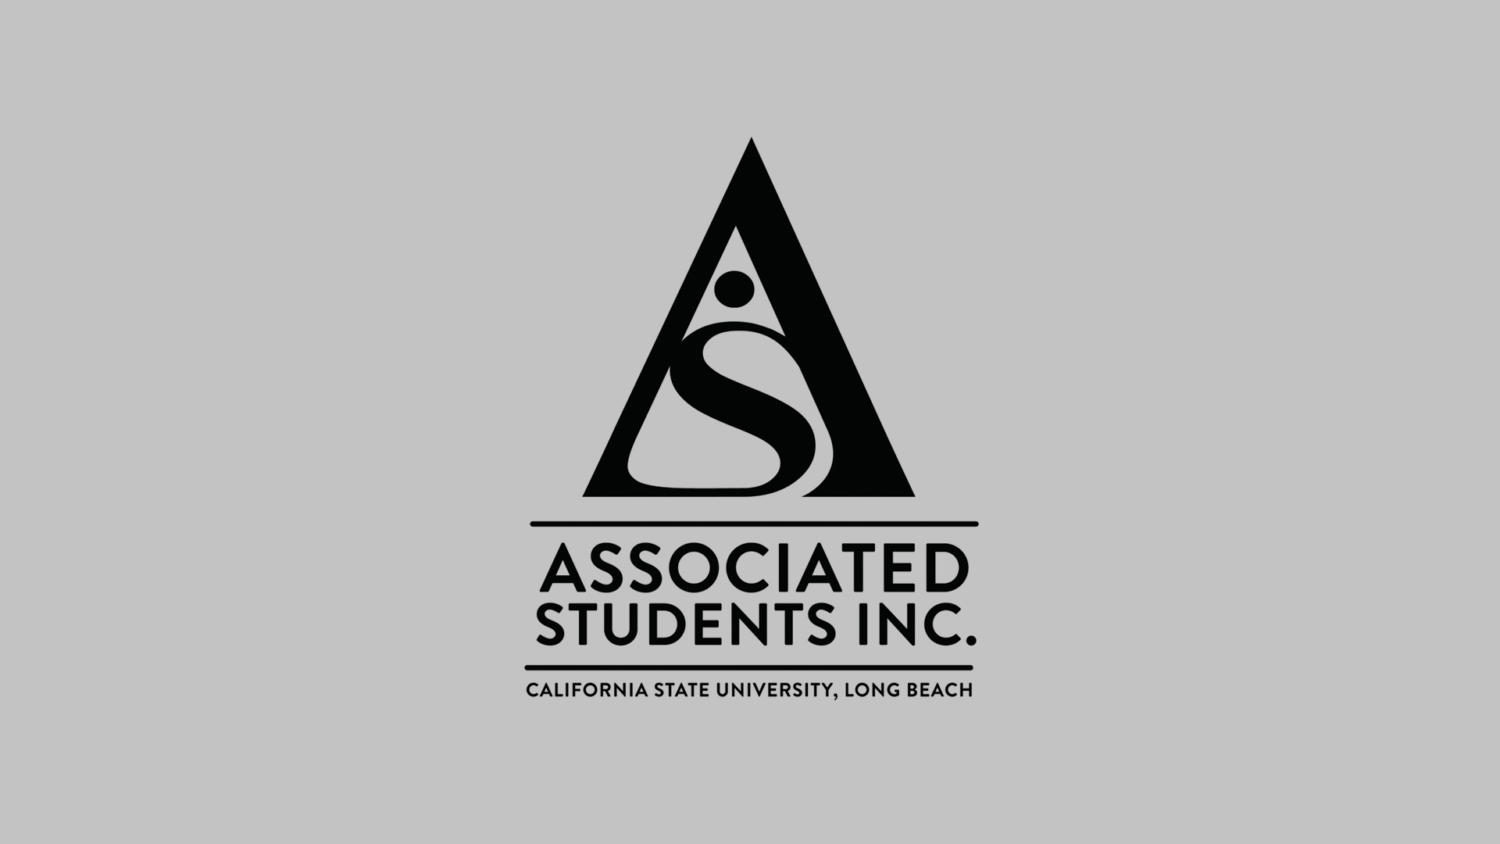 Associated Students Inc. - California State University, Long Beach